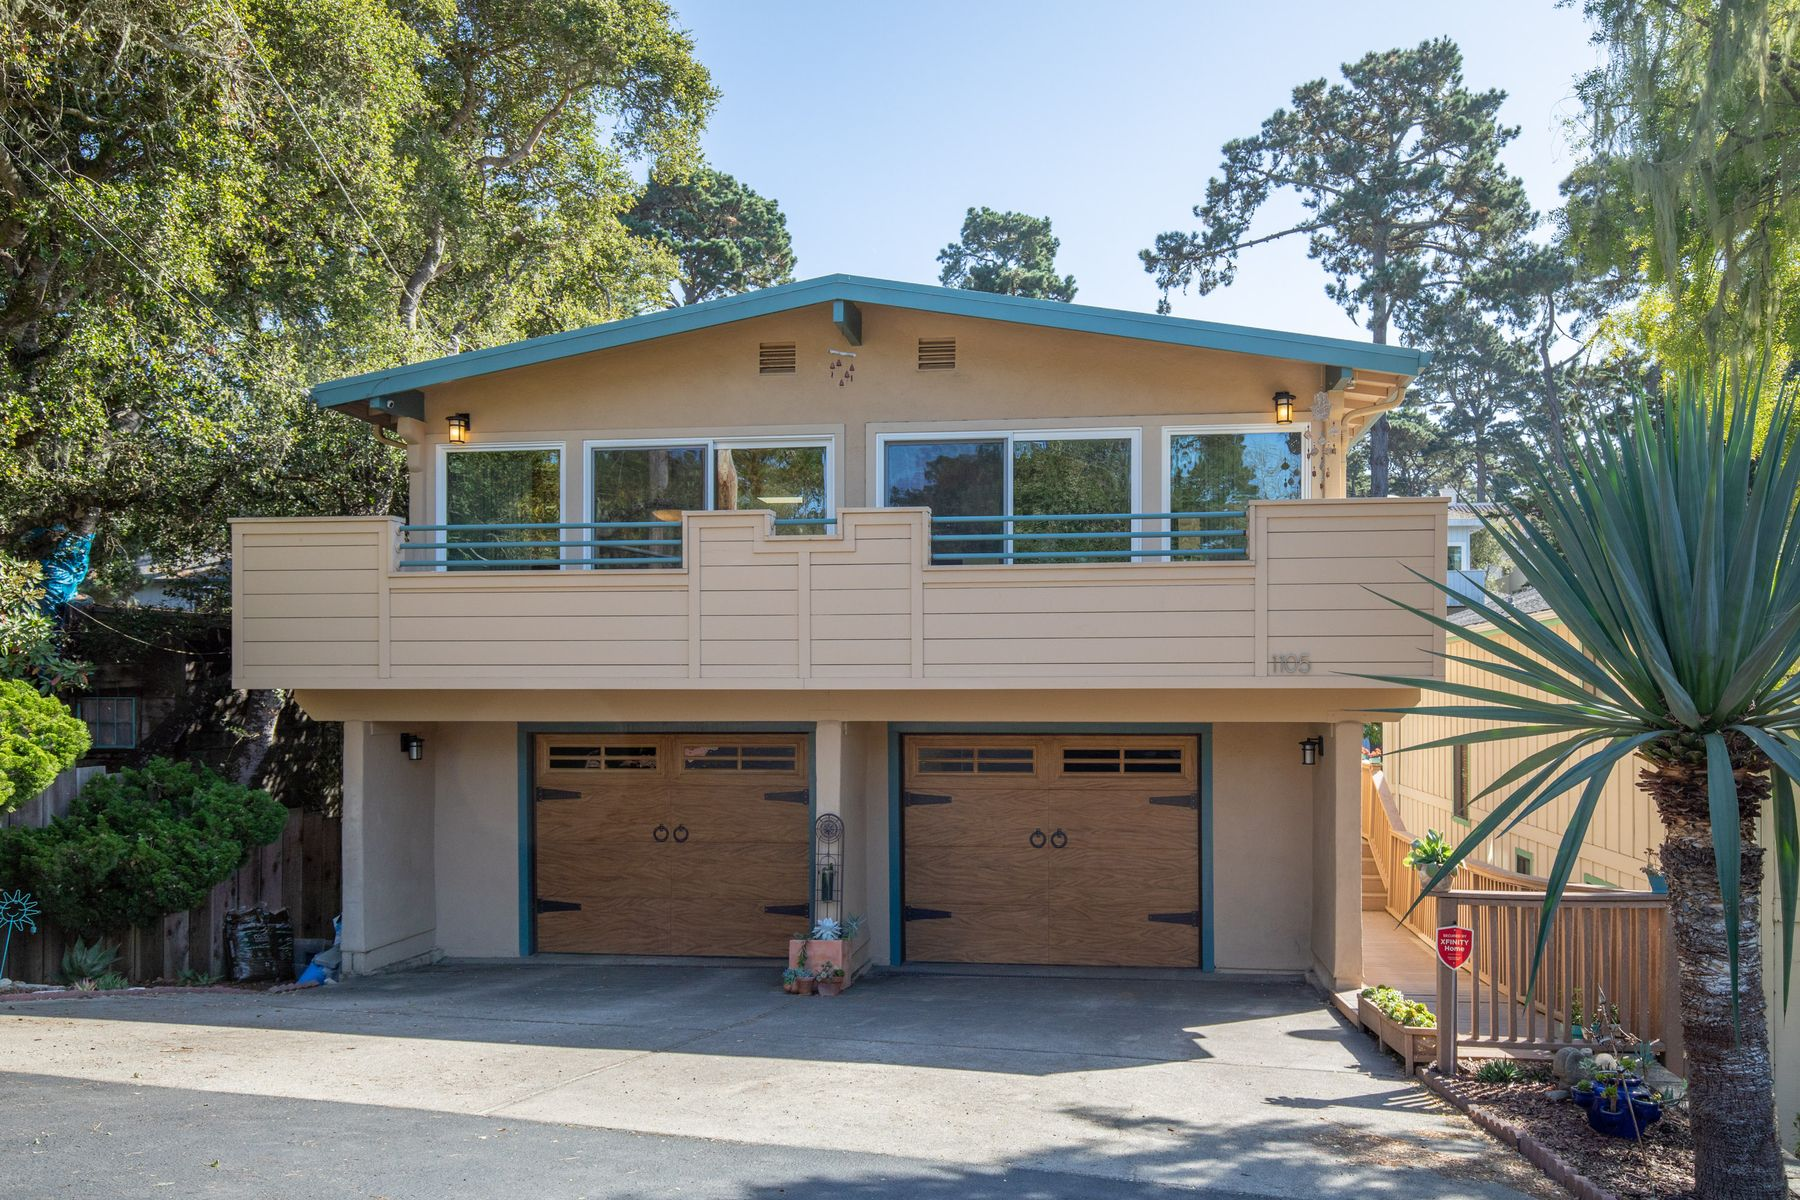 Single Family Homes for Sale at Great Updated 4 Bedroom in Pacific Grove 1105 Funston Avenue Pacific Grove, California 93950 United States